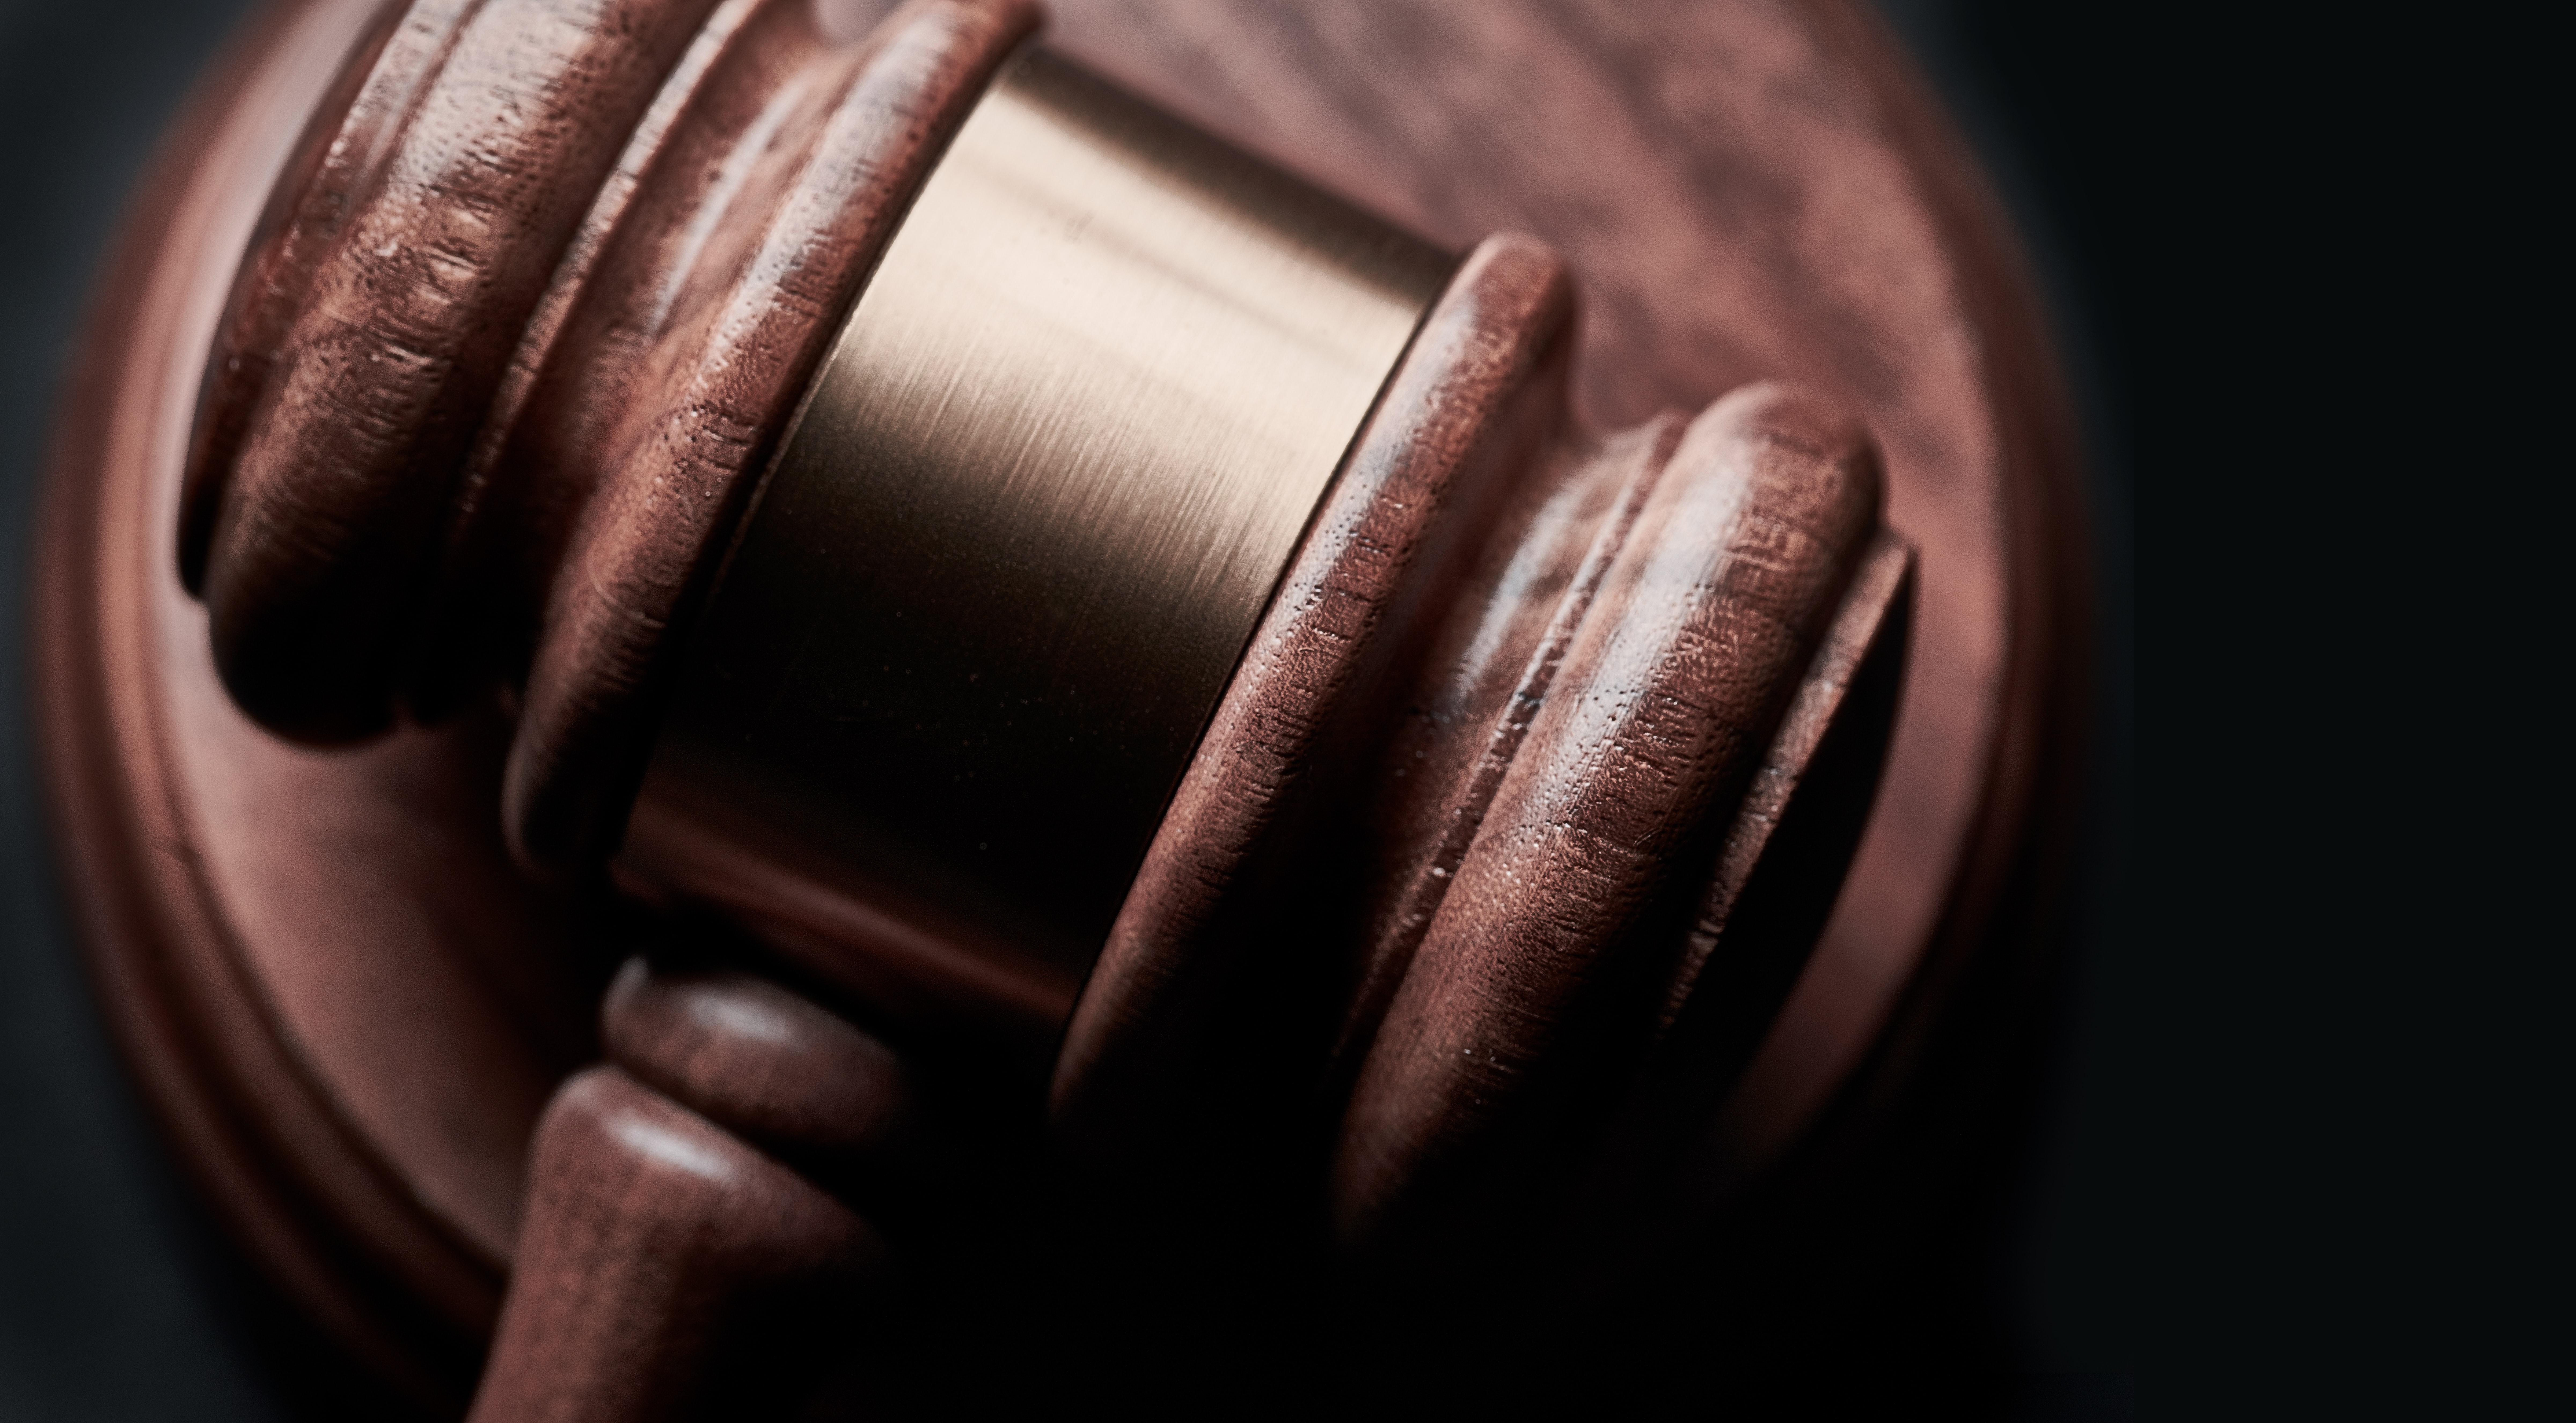 Labour law: The code of conduct and discipline.